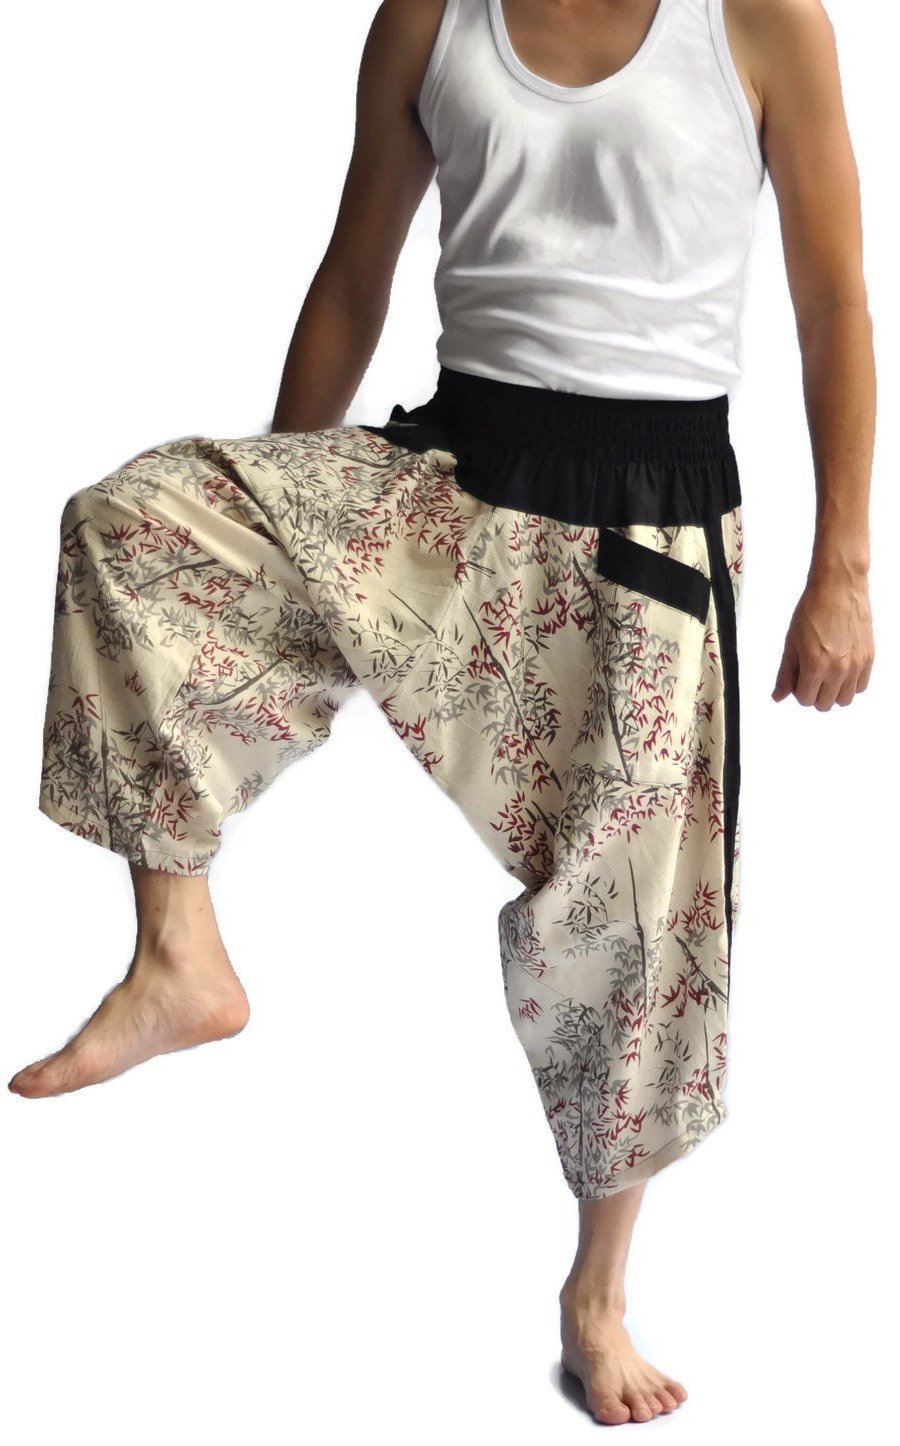 Siam Trendy Men's Japanese Style Pants One Size Two Tone bamboo design off white by Siam Trendy (Image #3)